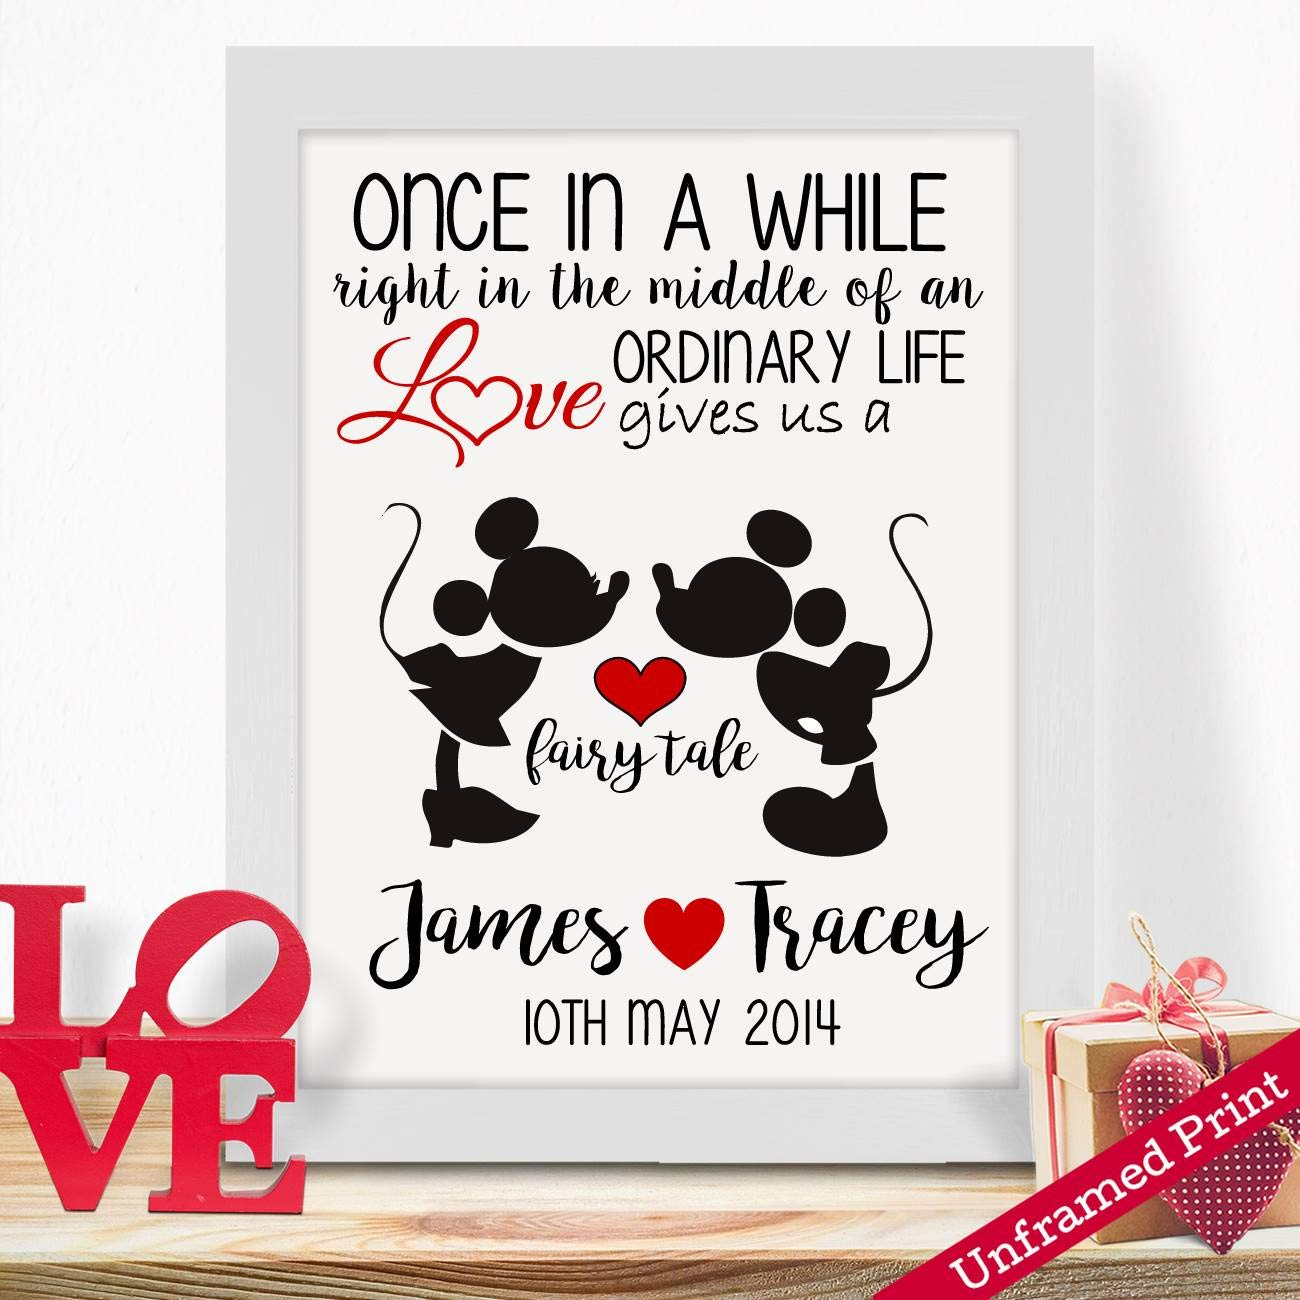 Personalised Gifts For Husband Wife Him Her Girlfriends Boyfriends